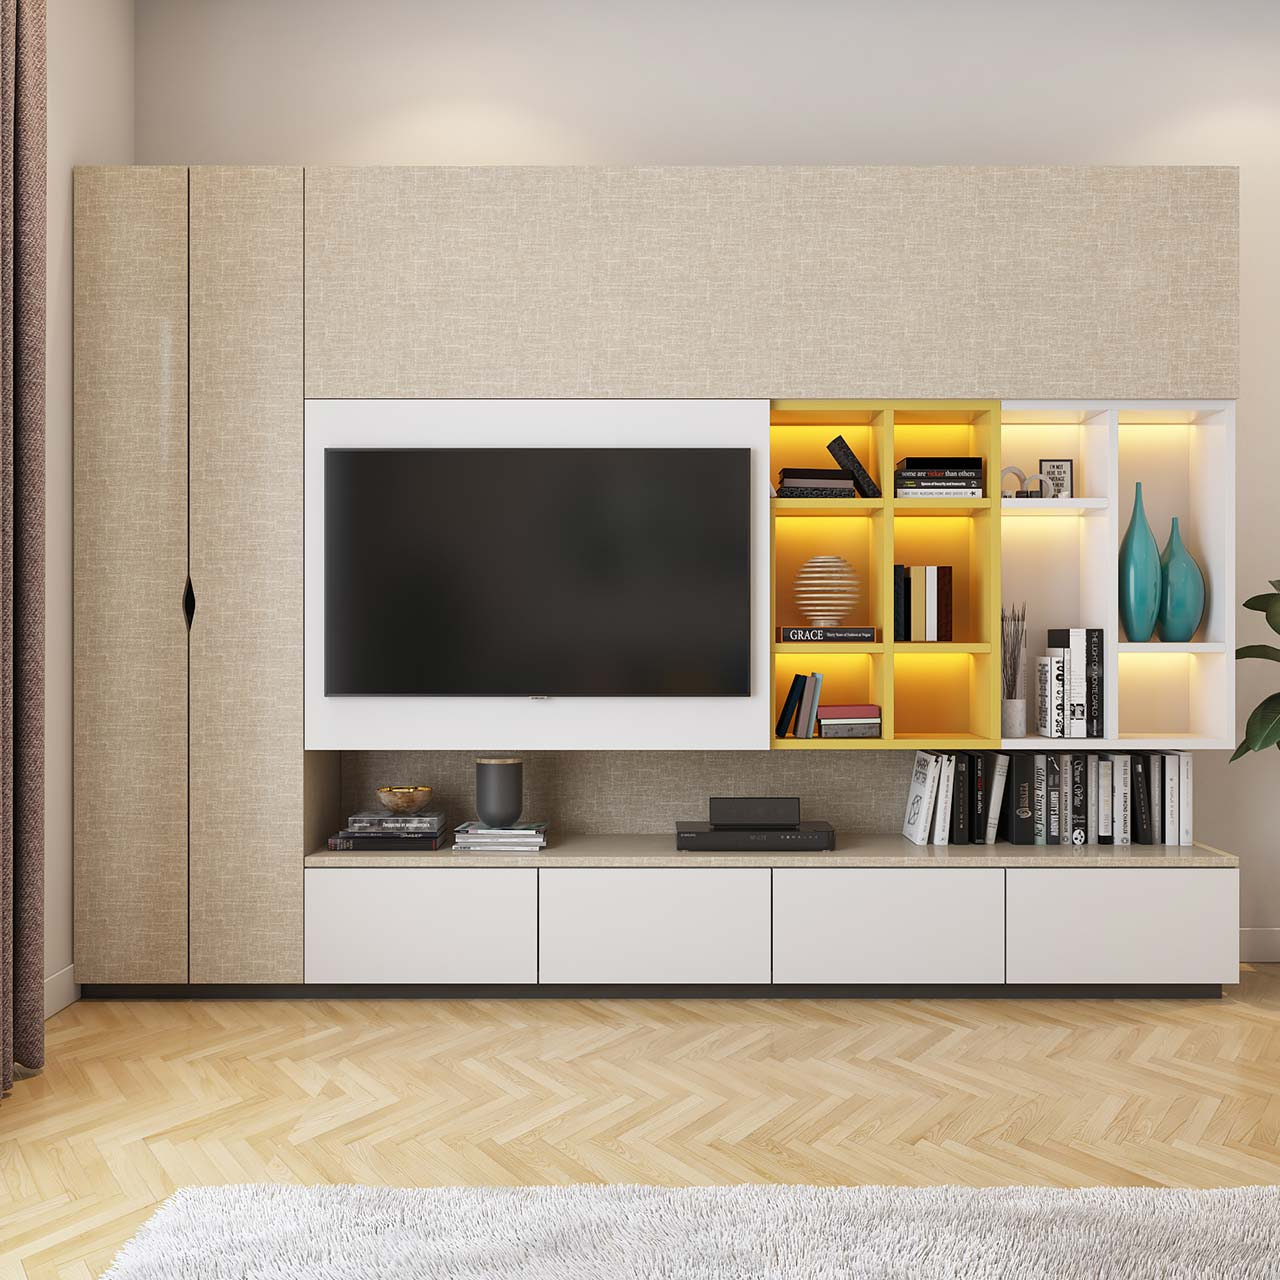 Home Design Ideas Bangalore: Modern TV Unit Design Ideas For Your Home